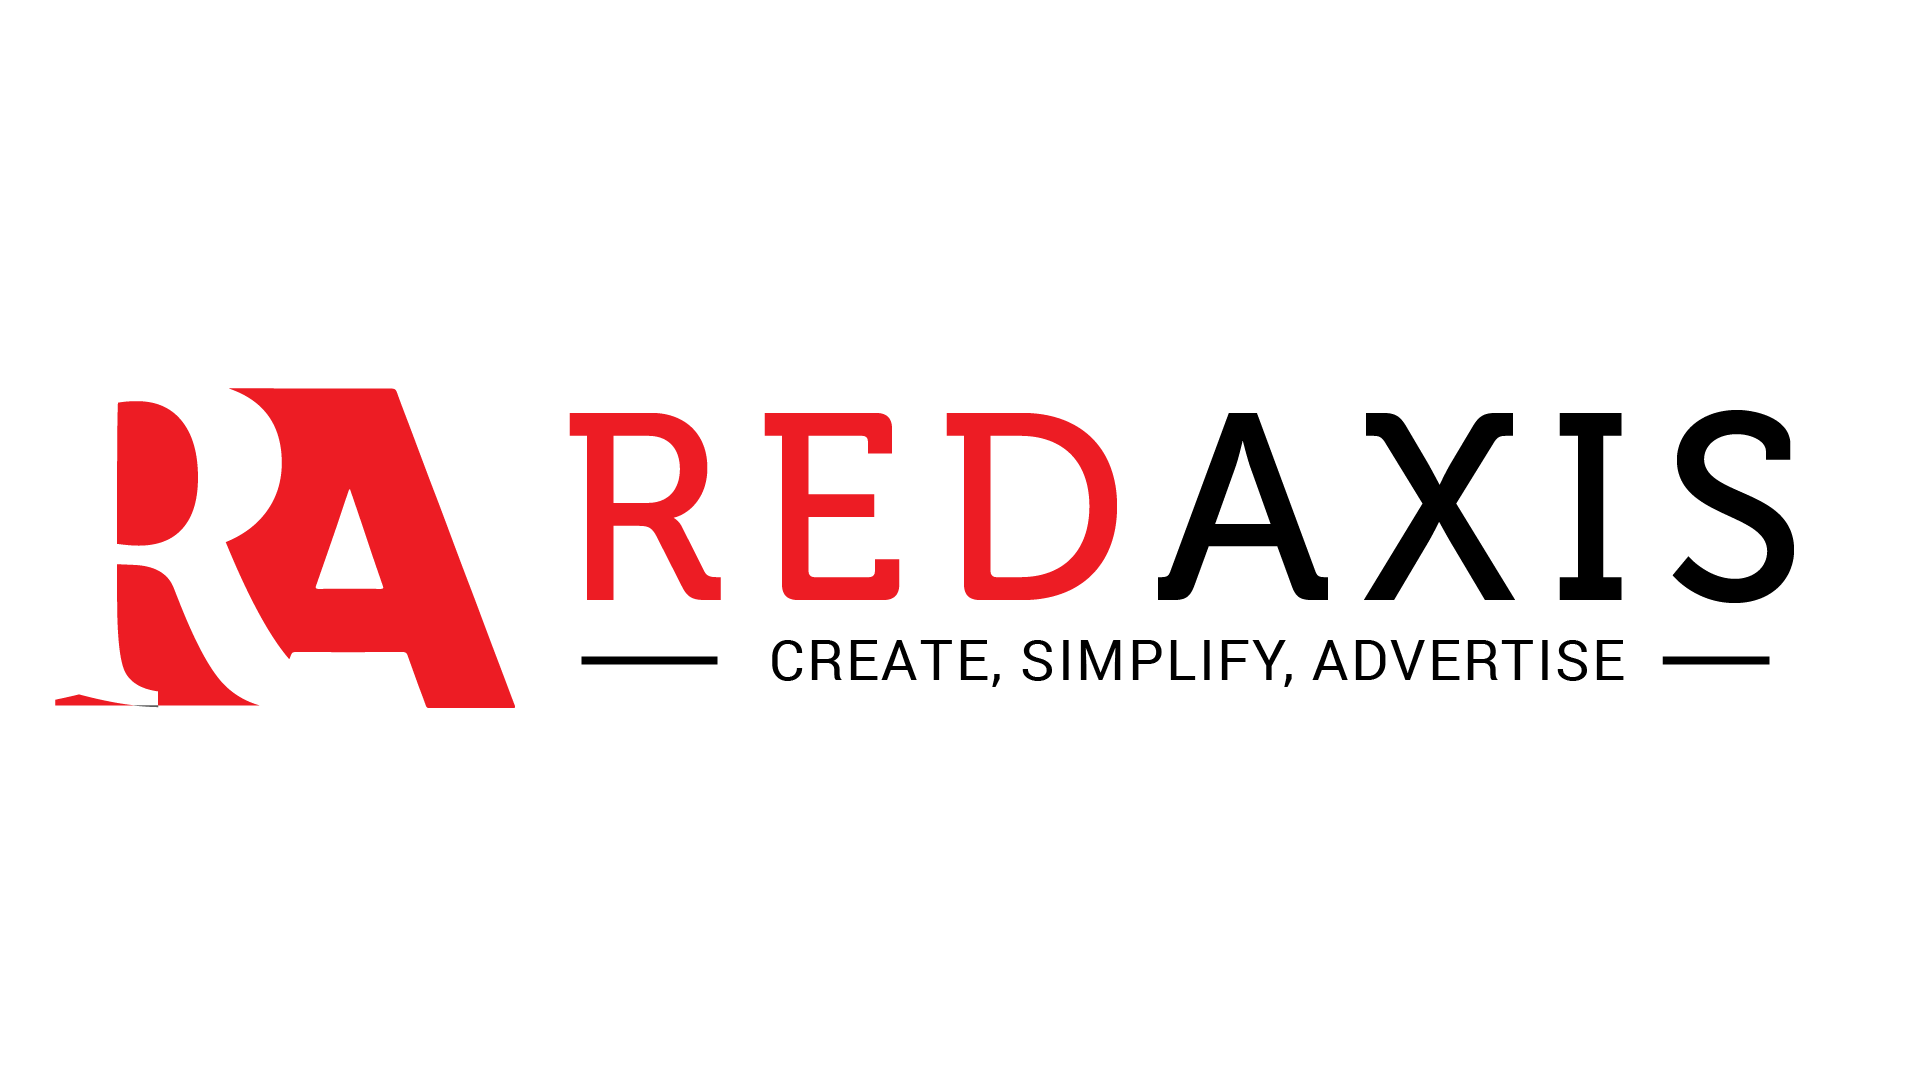 Red Axis